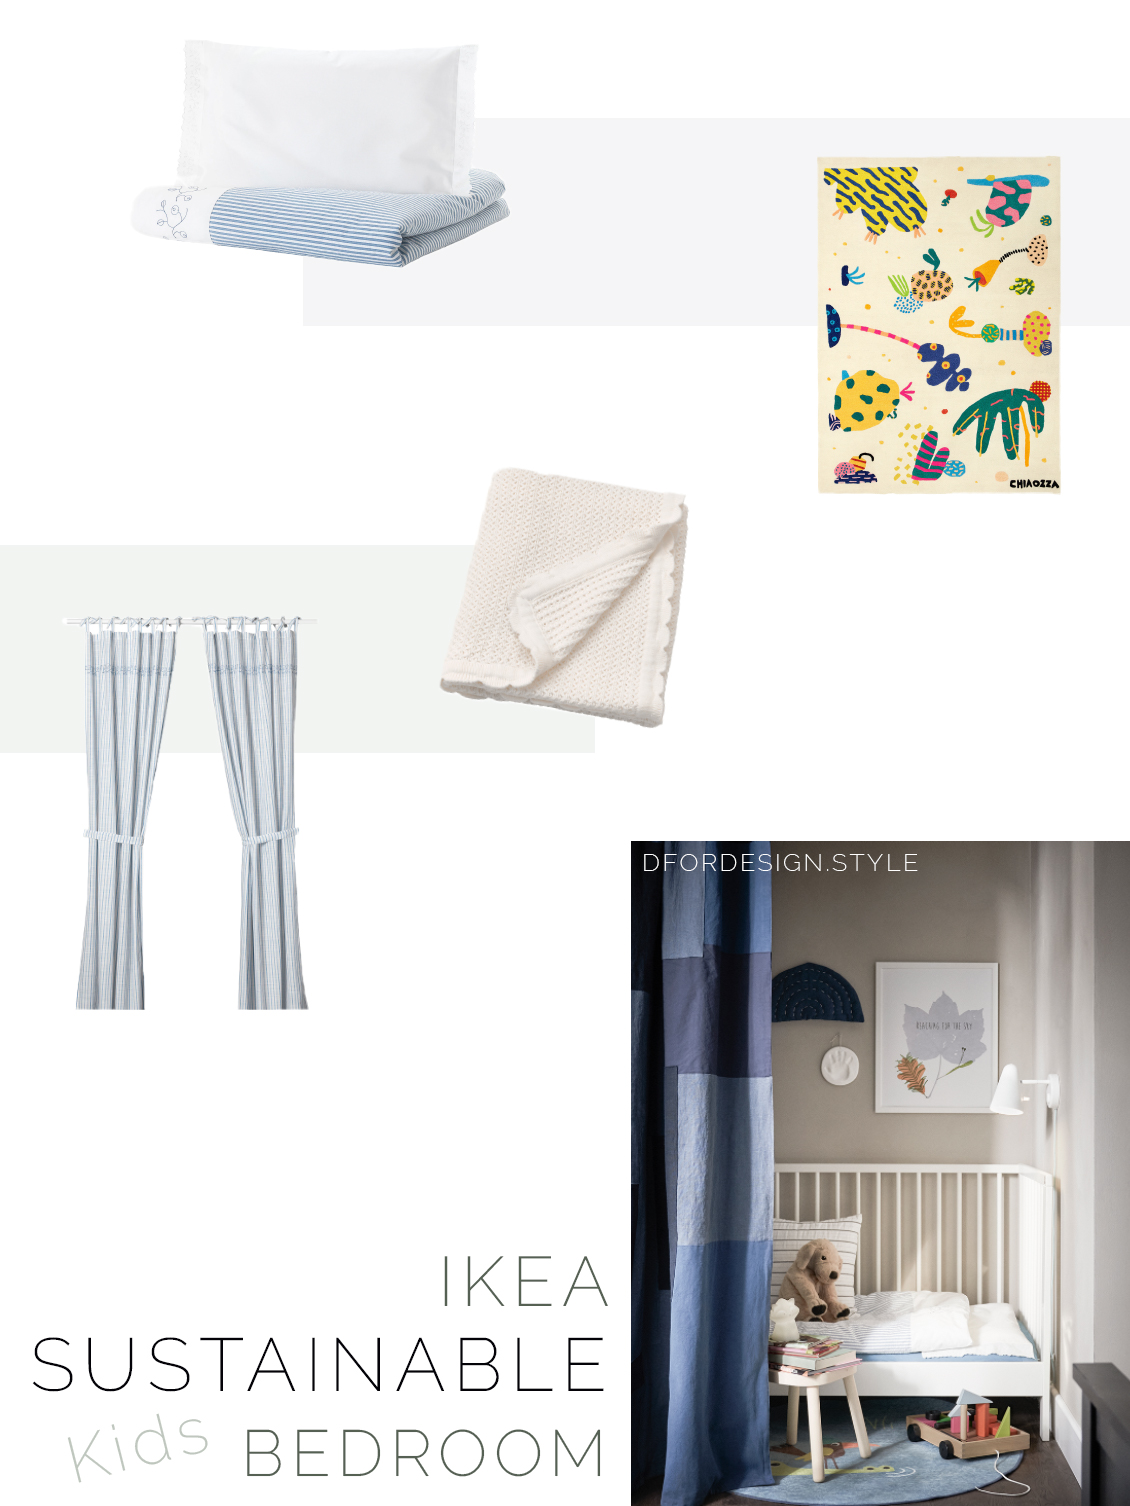 Moodboard showing a variety of sustainable textiles for kids' bedrooms.